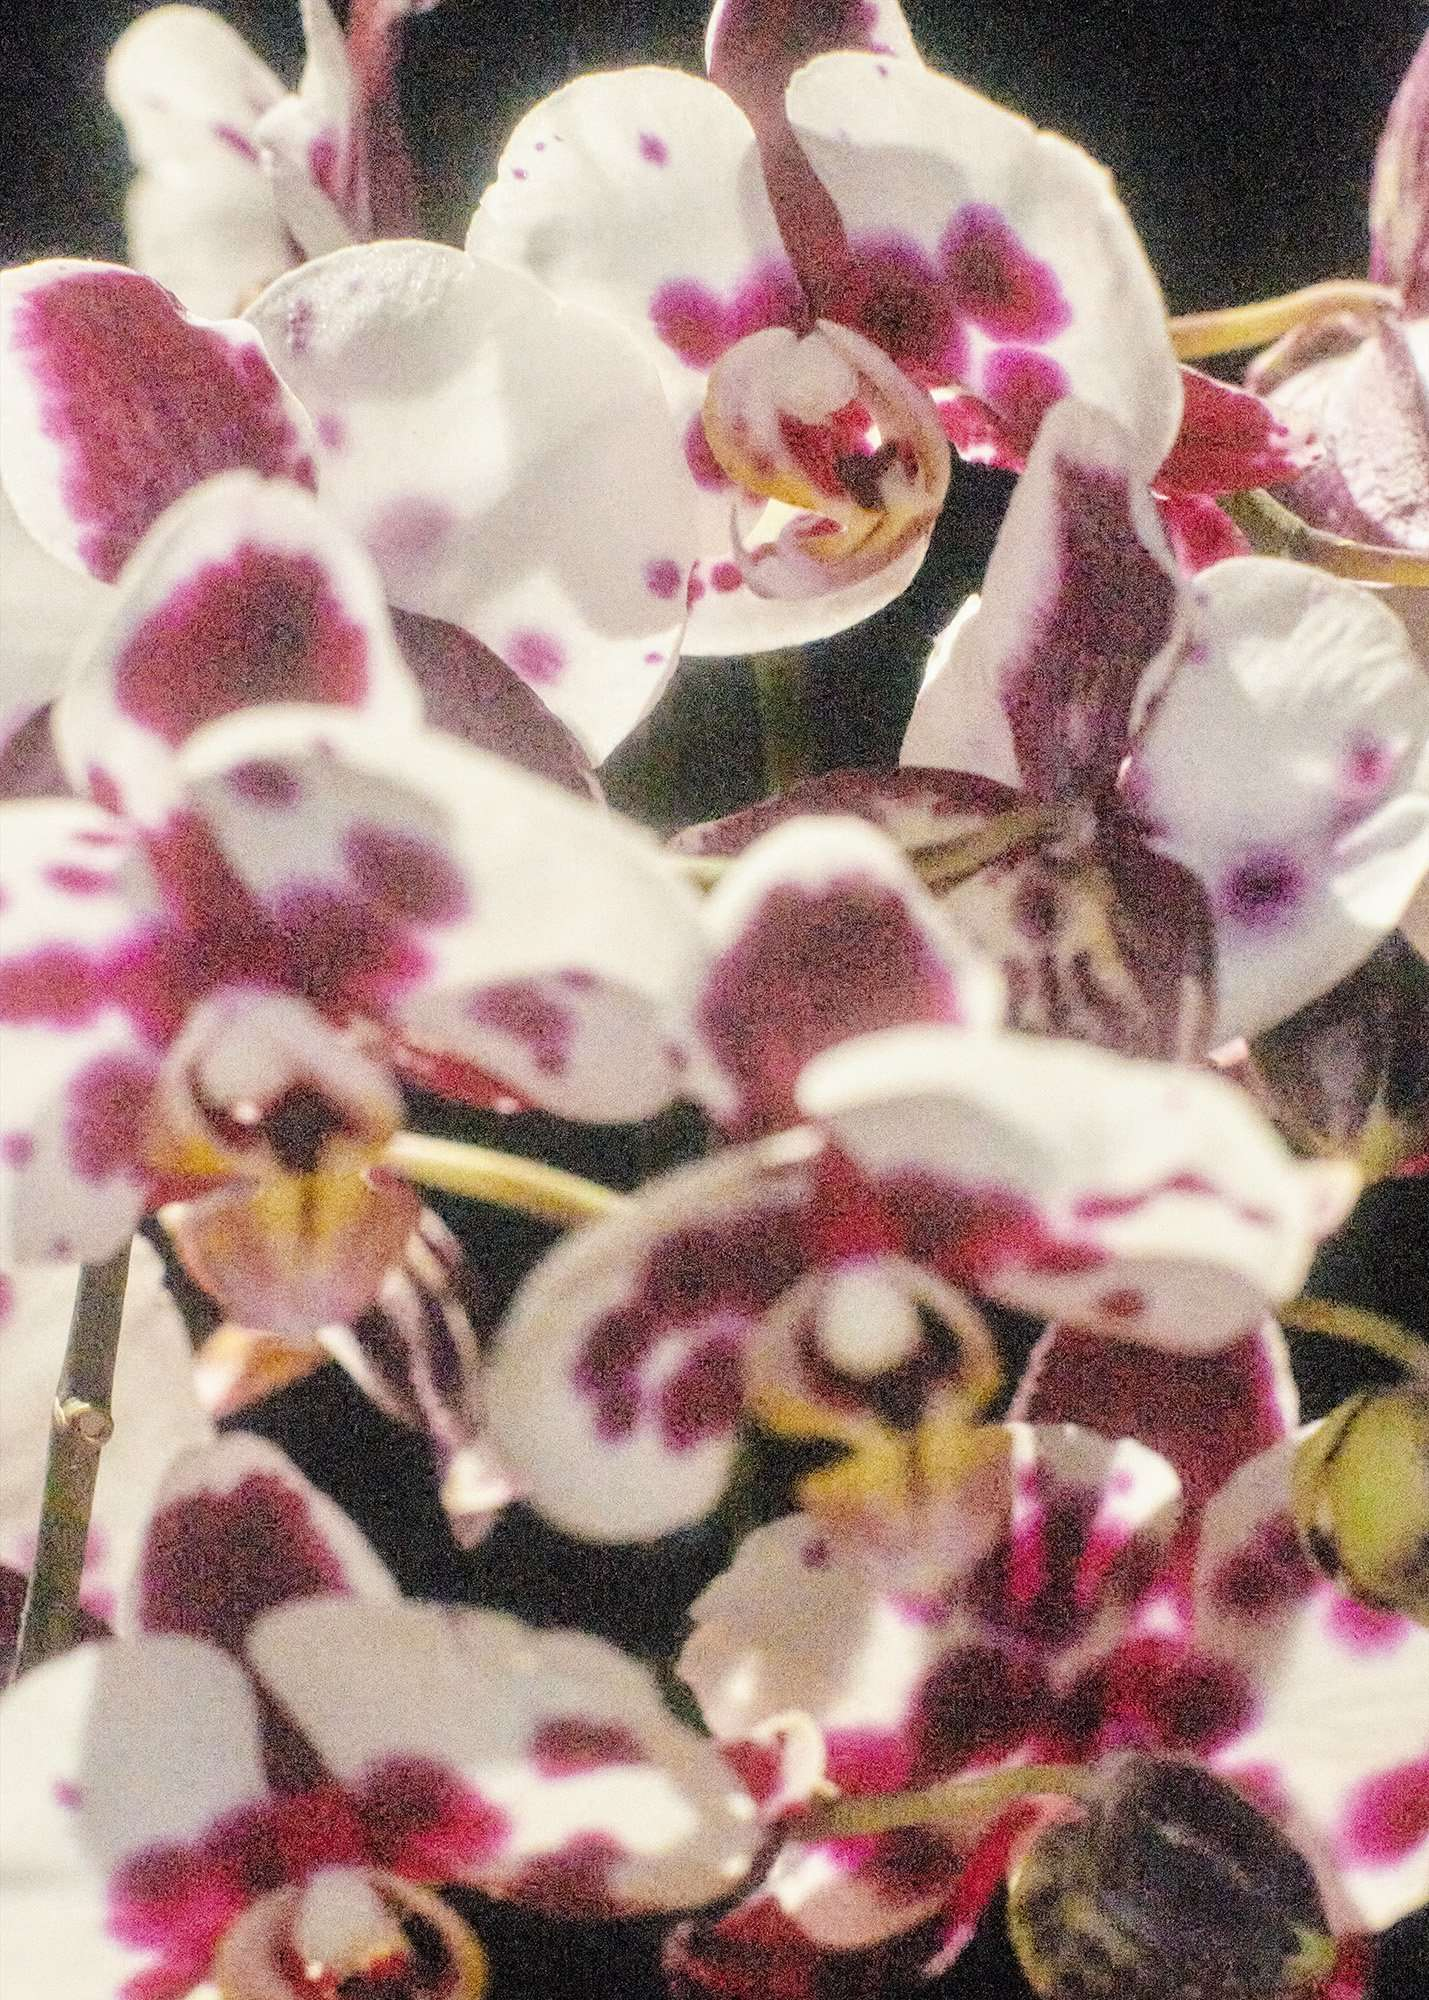 Phalaenopsis #1, 2020 C-Type print, 11 x 14 inches Edition of 5